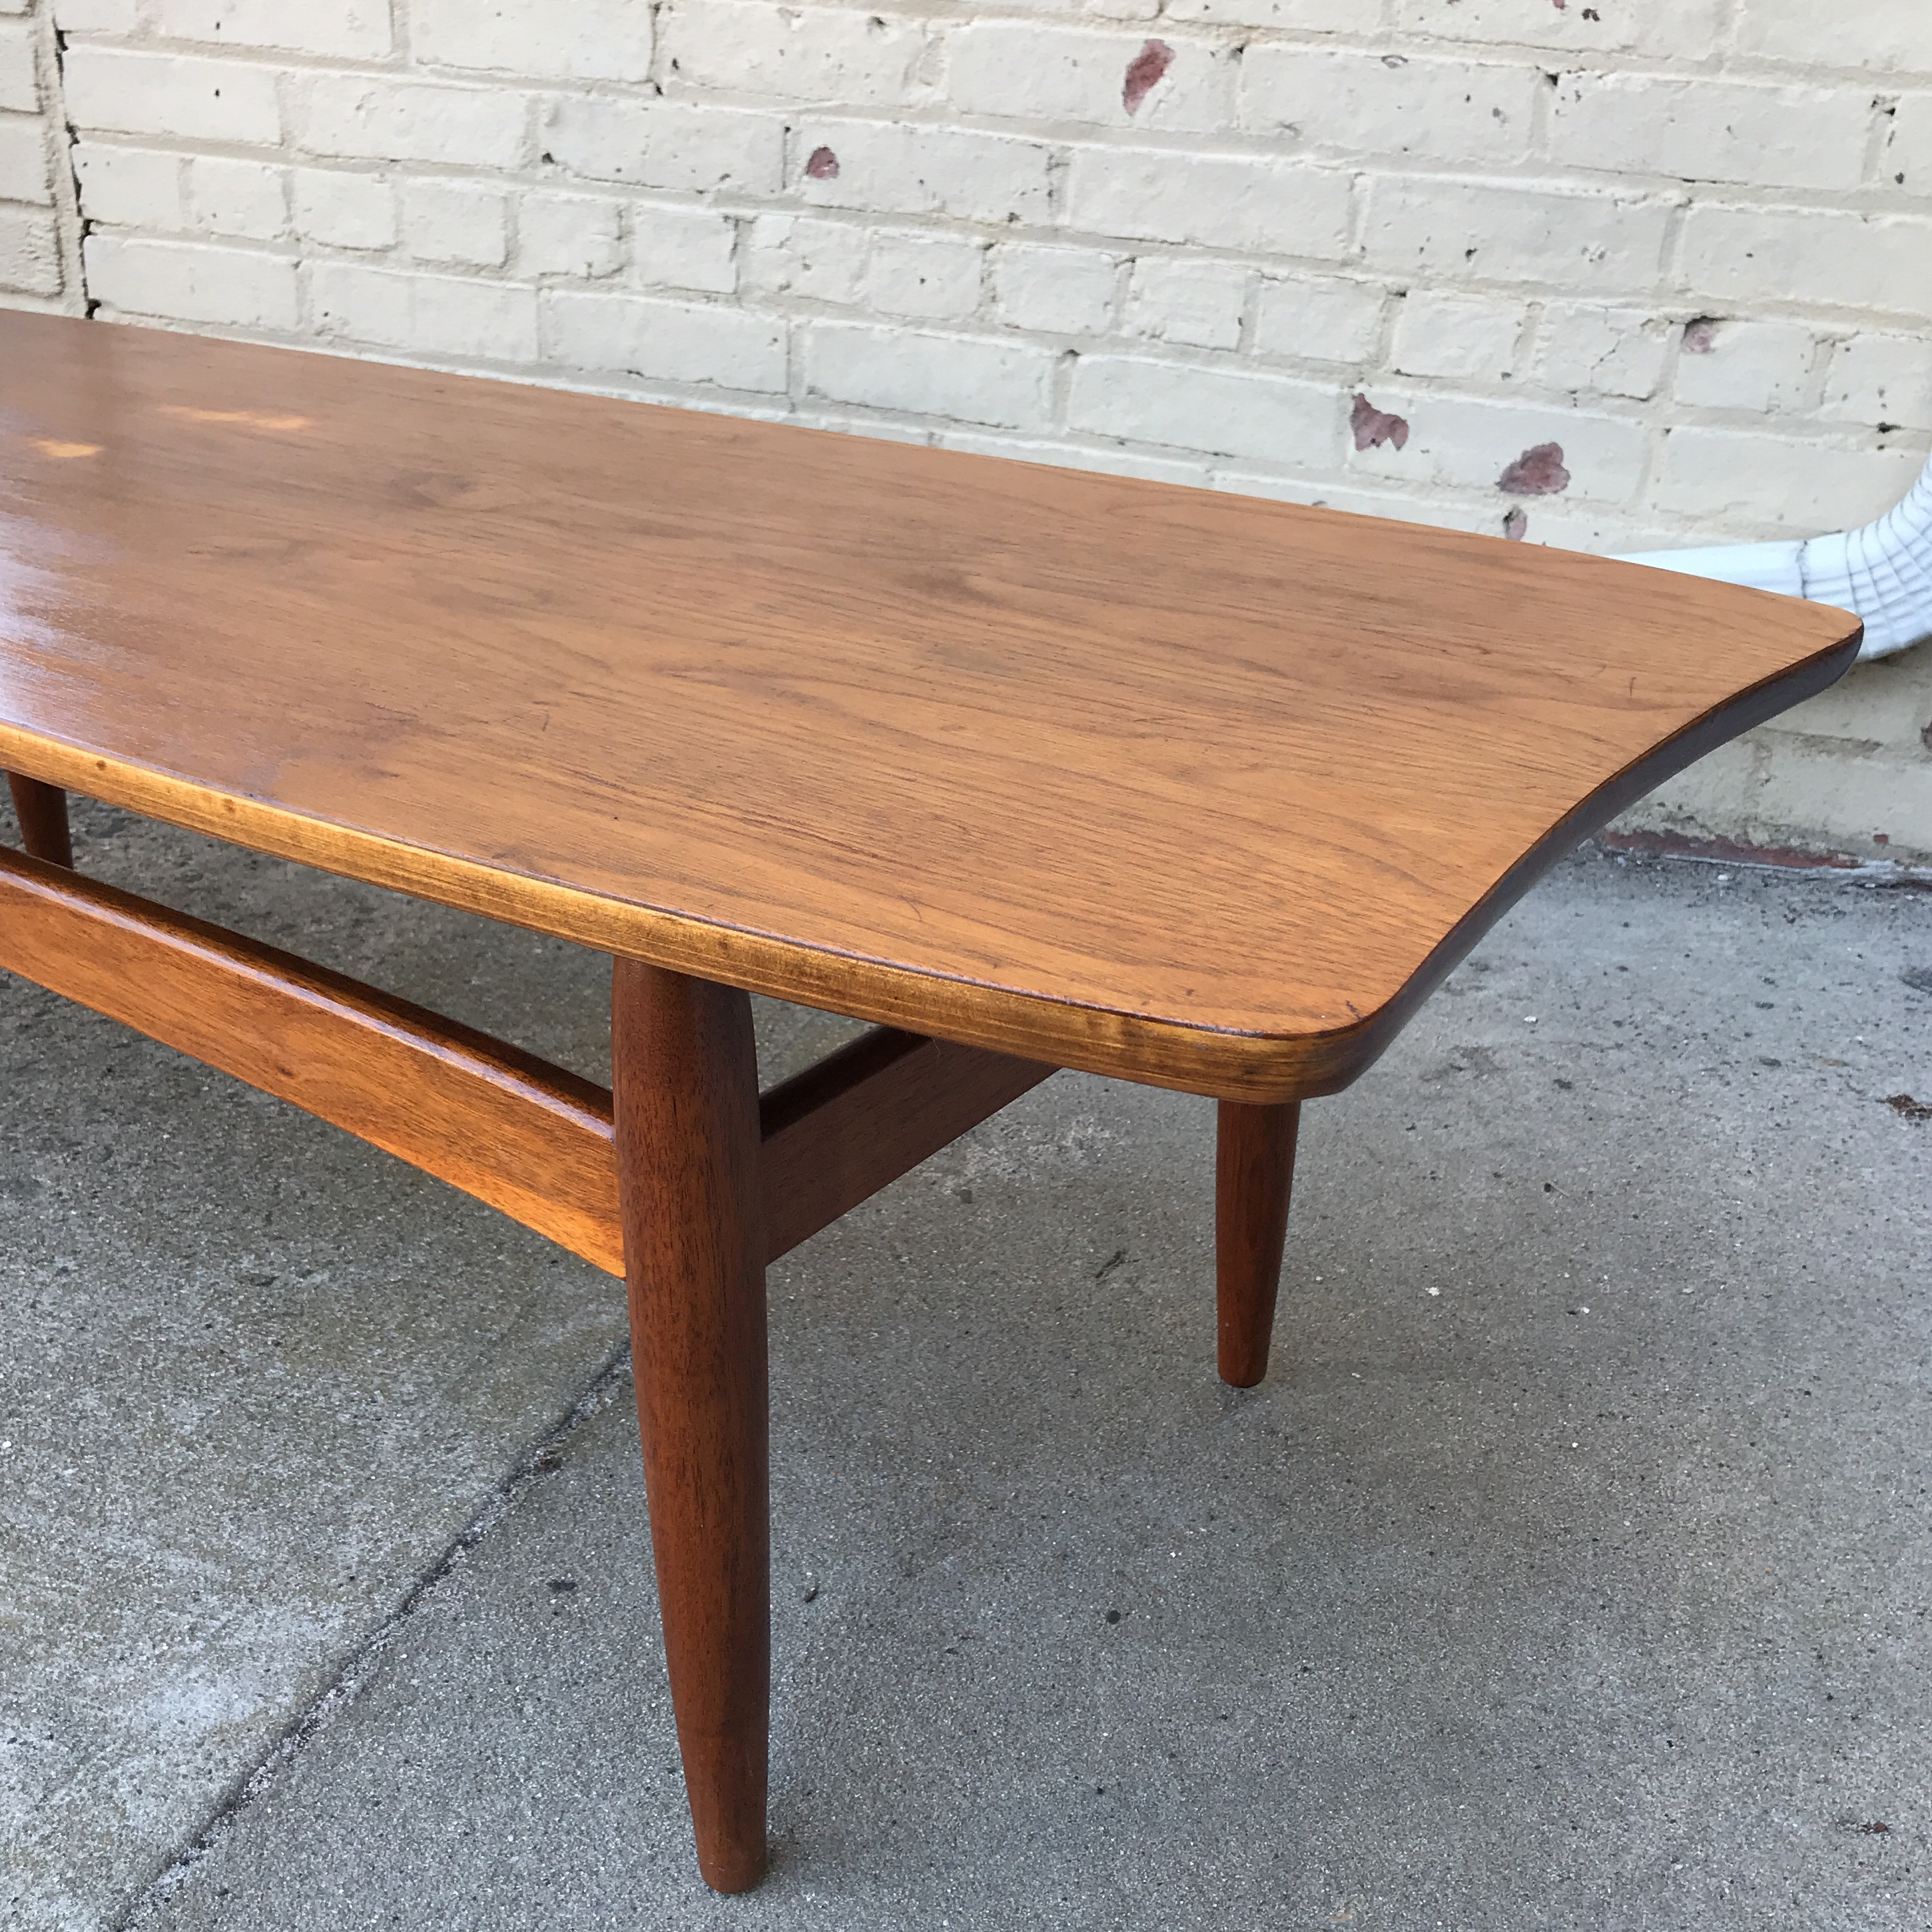 Superieur 20th Century Danish Modern Teak And Oak Surfboard Coffee Table For Sale    Image 4 Of